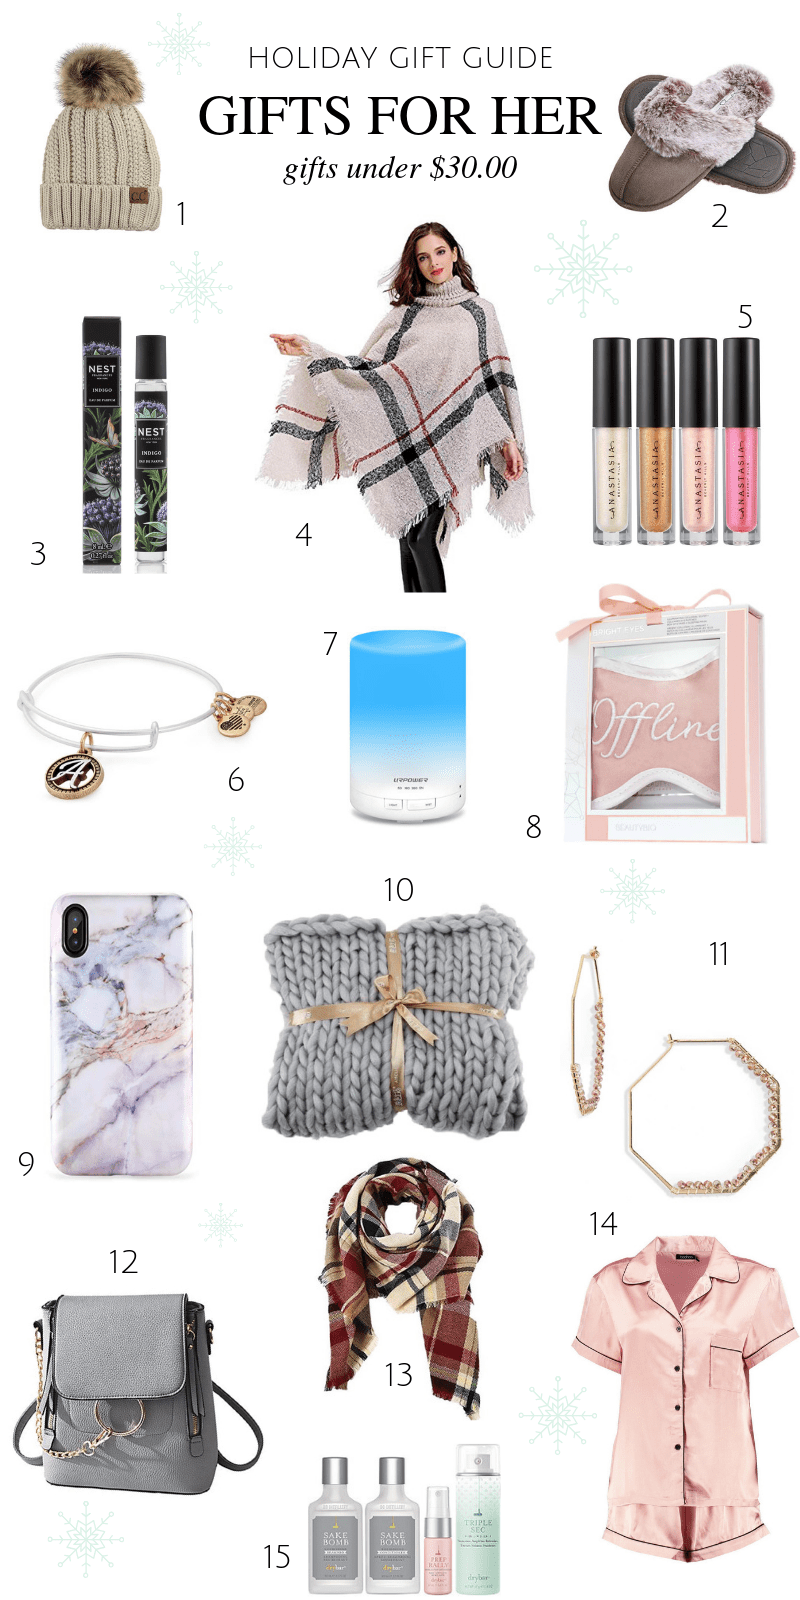 Employee christmas gift ideas under $30